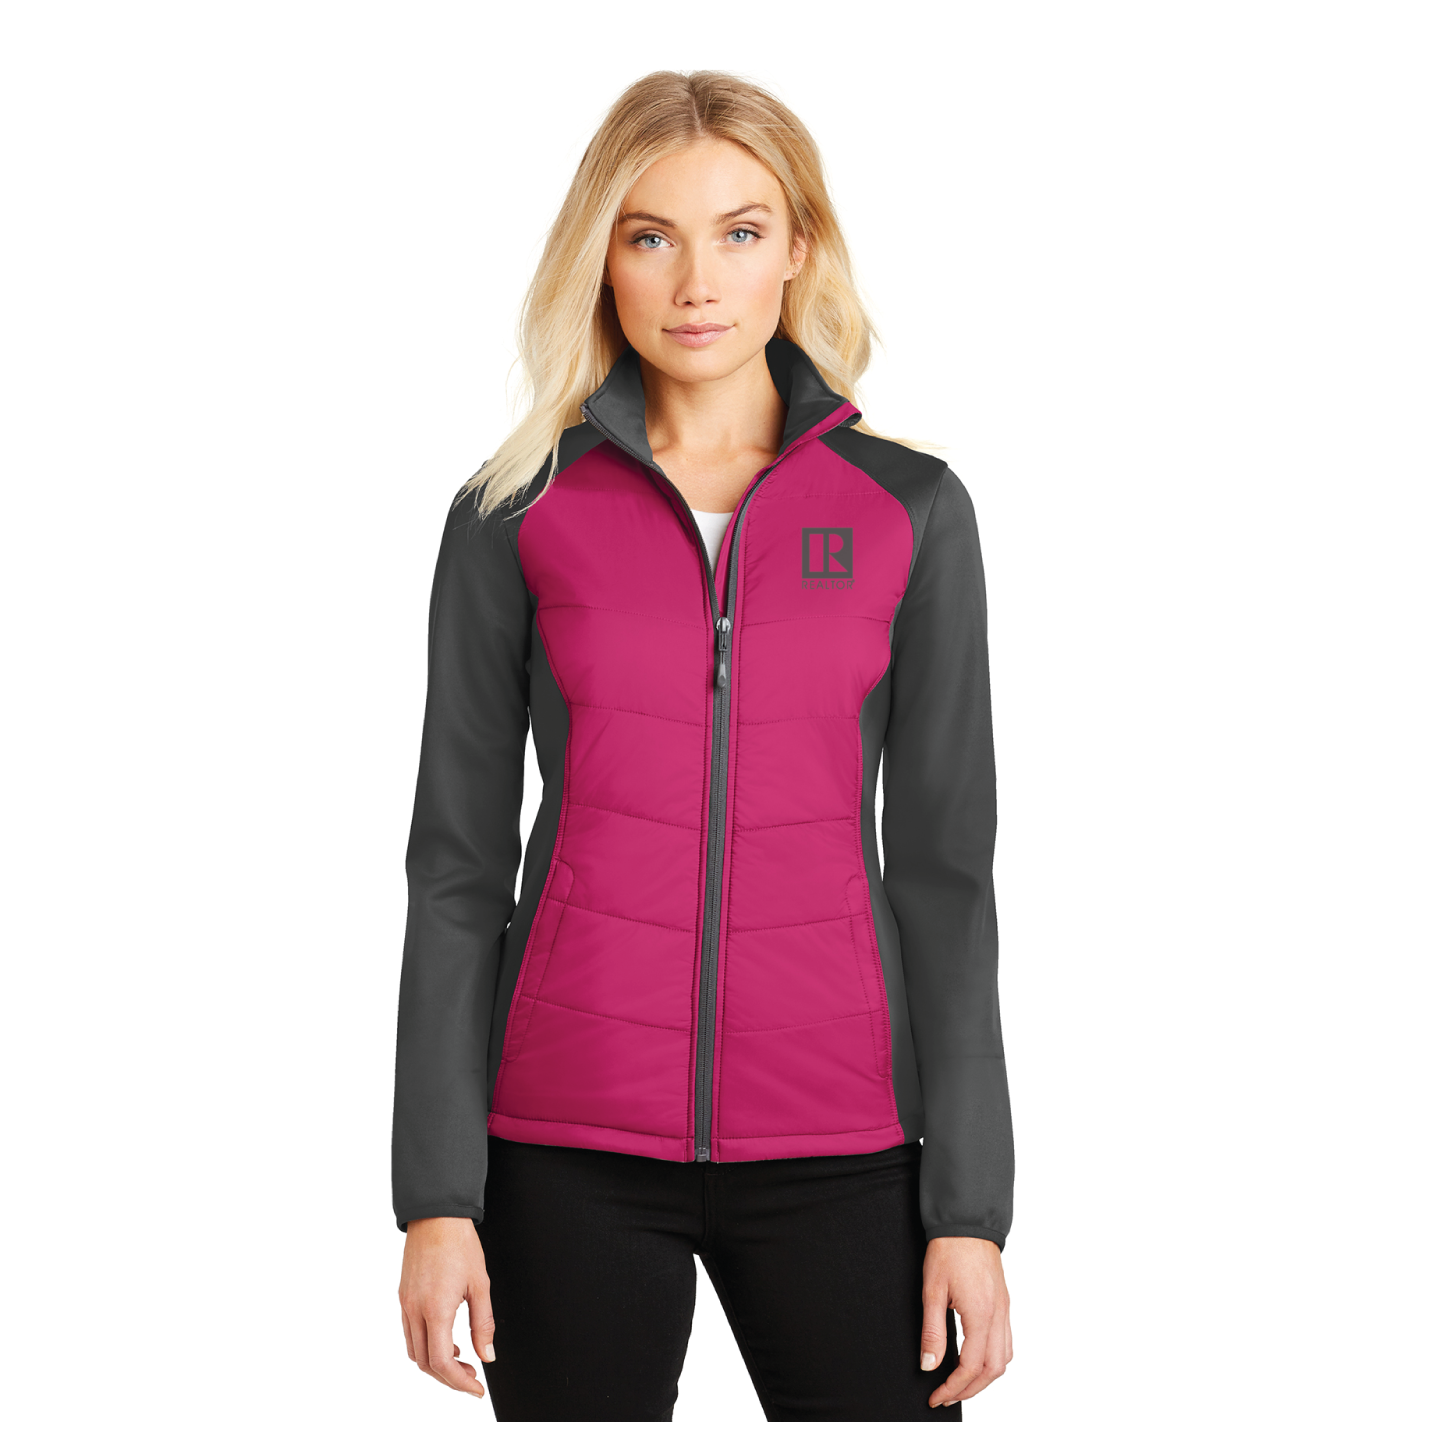 Ladies Quilted Softshell Mashup Jacket North Face, Mashup, Puffy, Vest, Softshell, Soft shell, Jacket, Coat, Sping, Winter